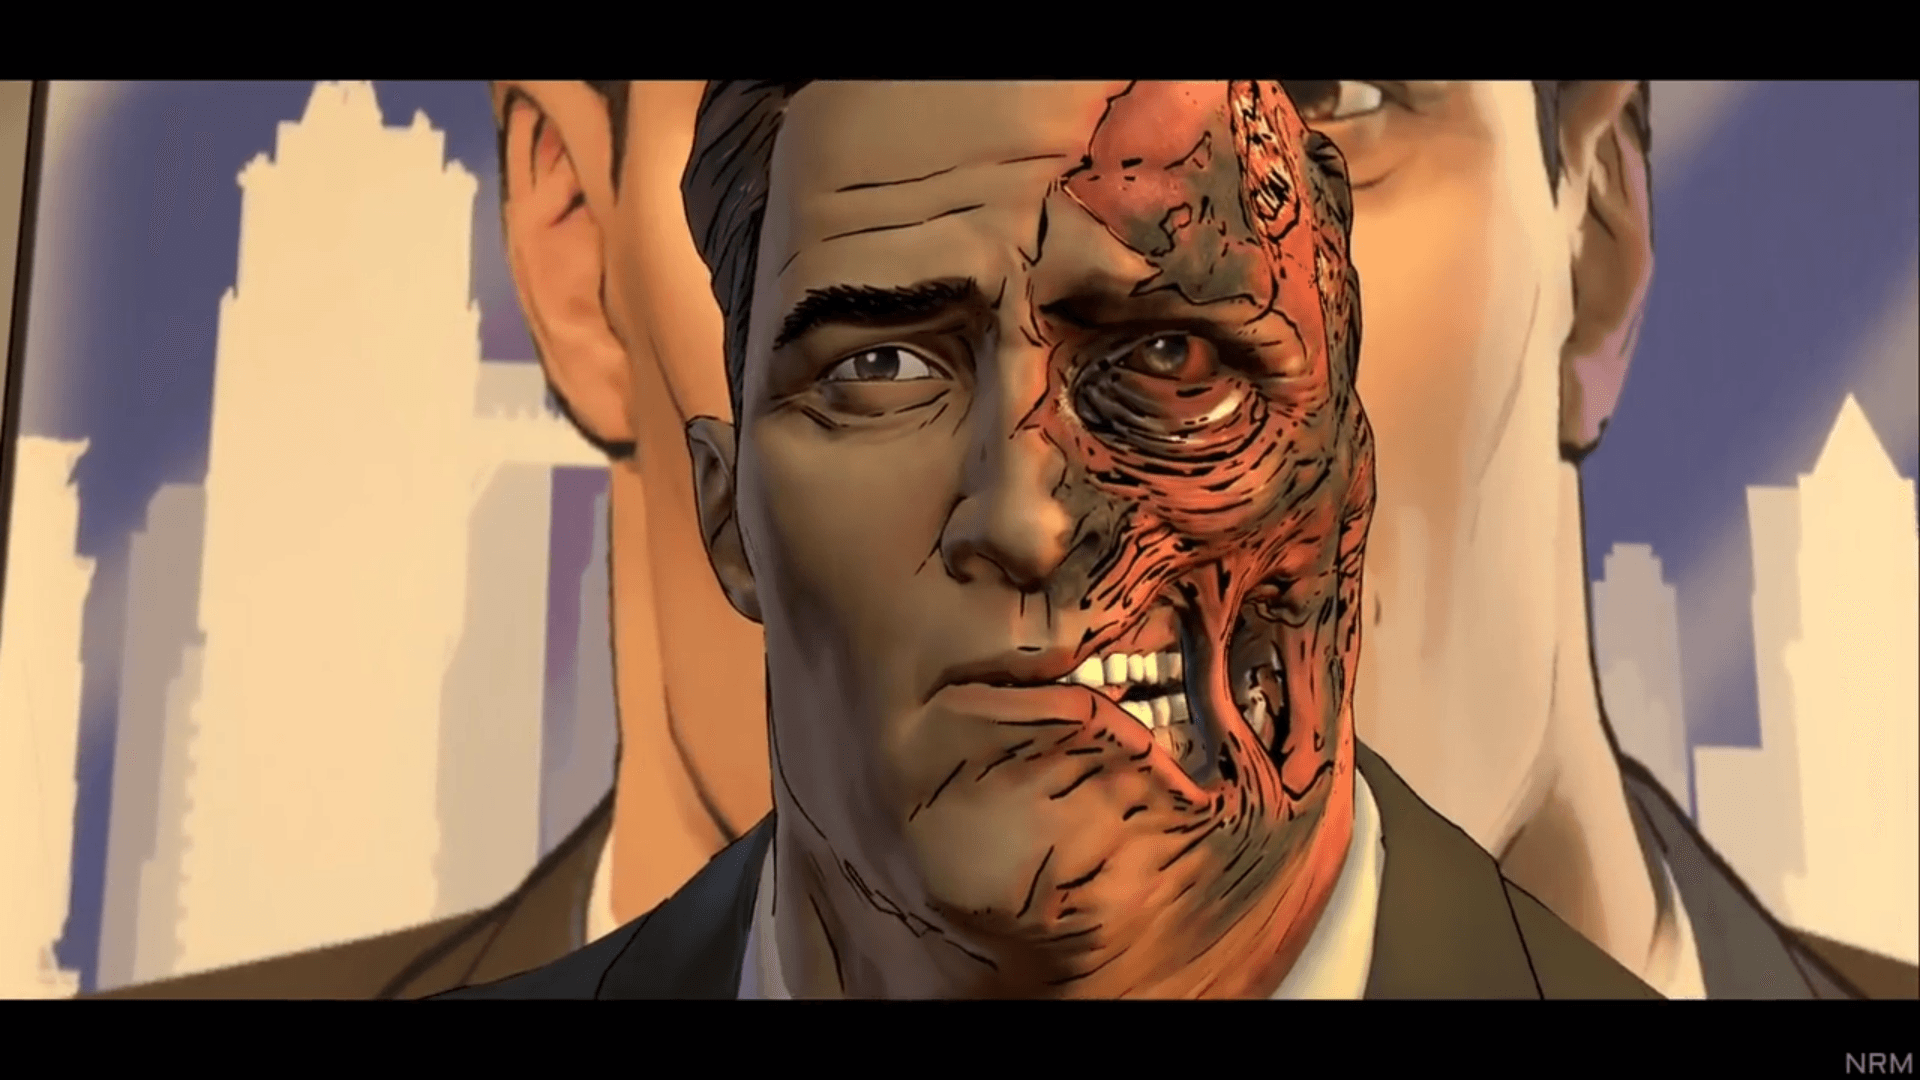 The new Harvey Dent, multiple personalities and all